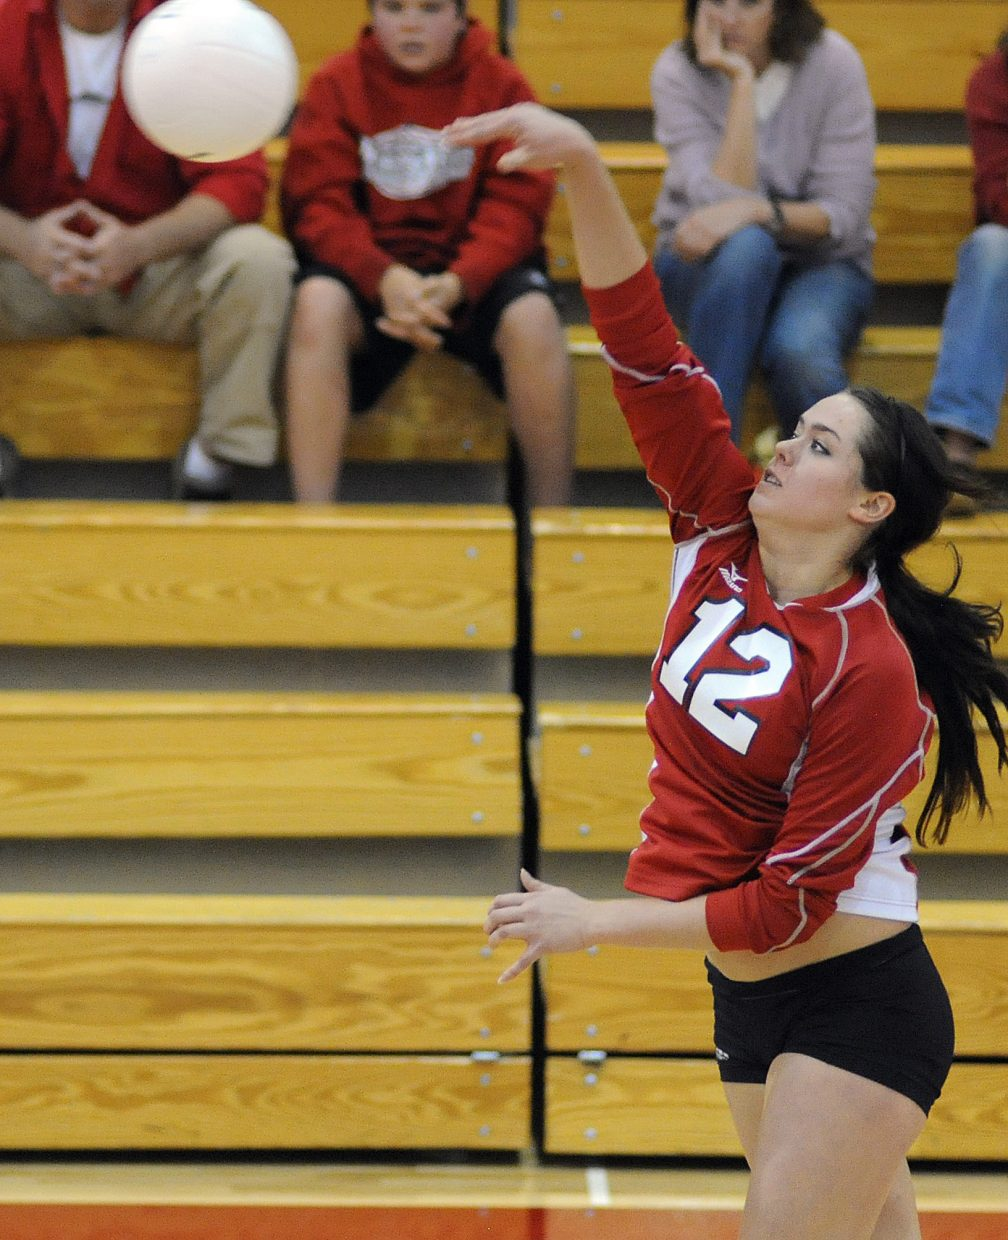 Amy Brodie hits the ball Thursday against Glenwood Springs.